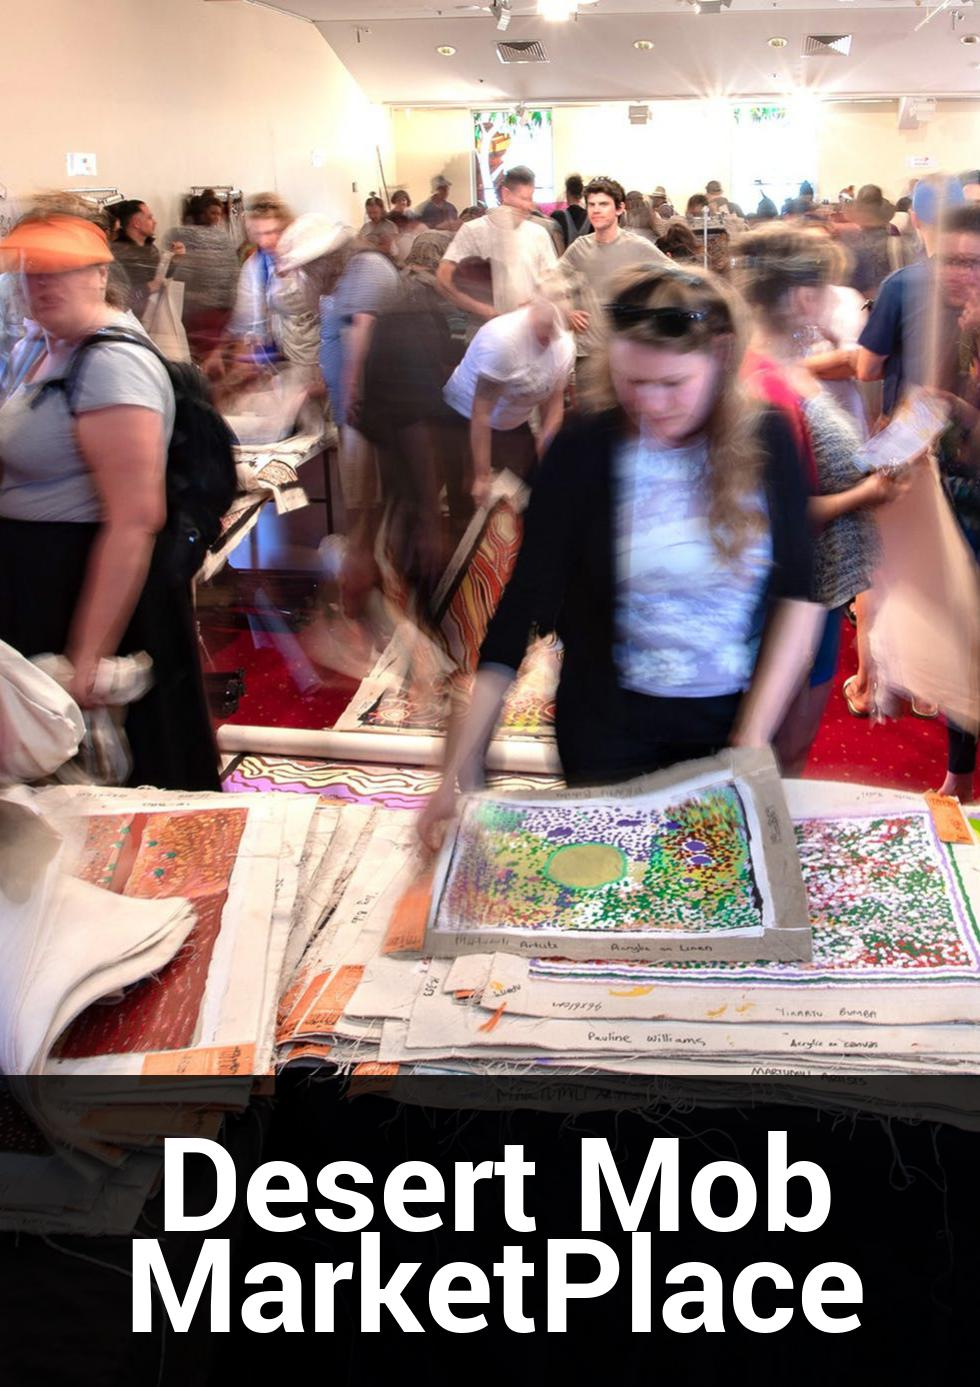 Desert Mob MarketPlace at Araluen Cultural Precinct